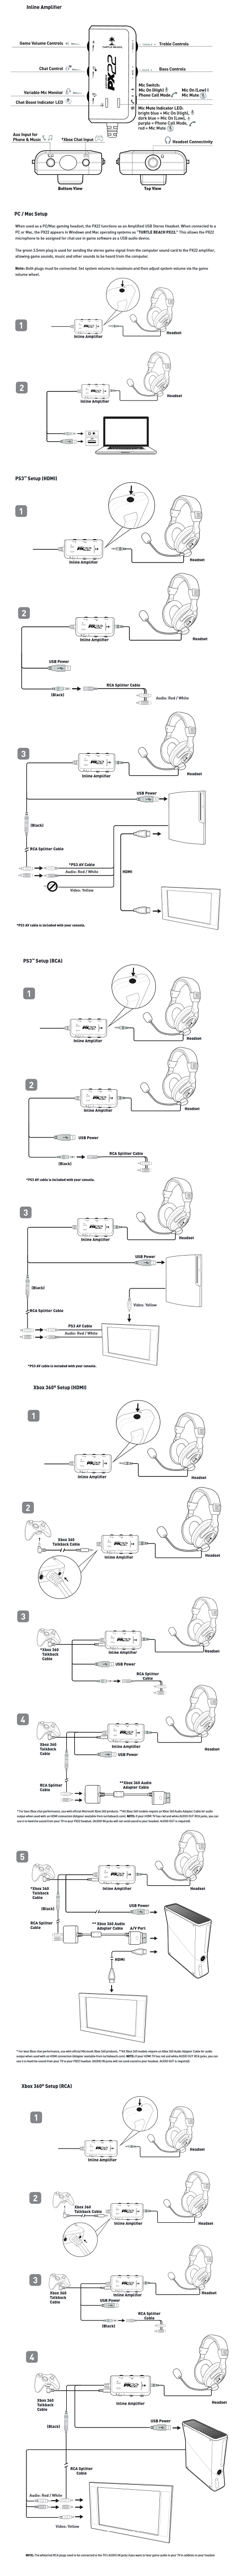 PX22_SETUP turtle beach px22 wiring diagram how to rewire turtle beach Ear Force PX21 at creativeand.co